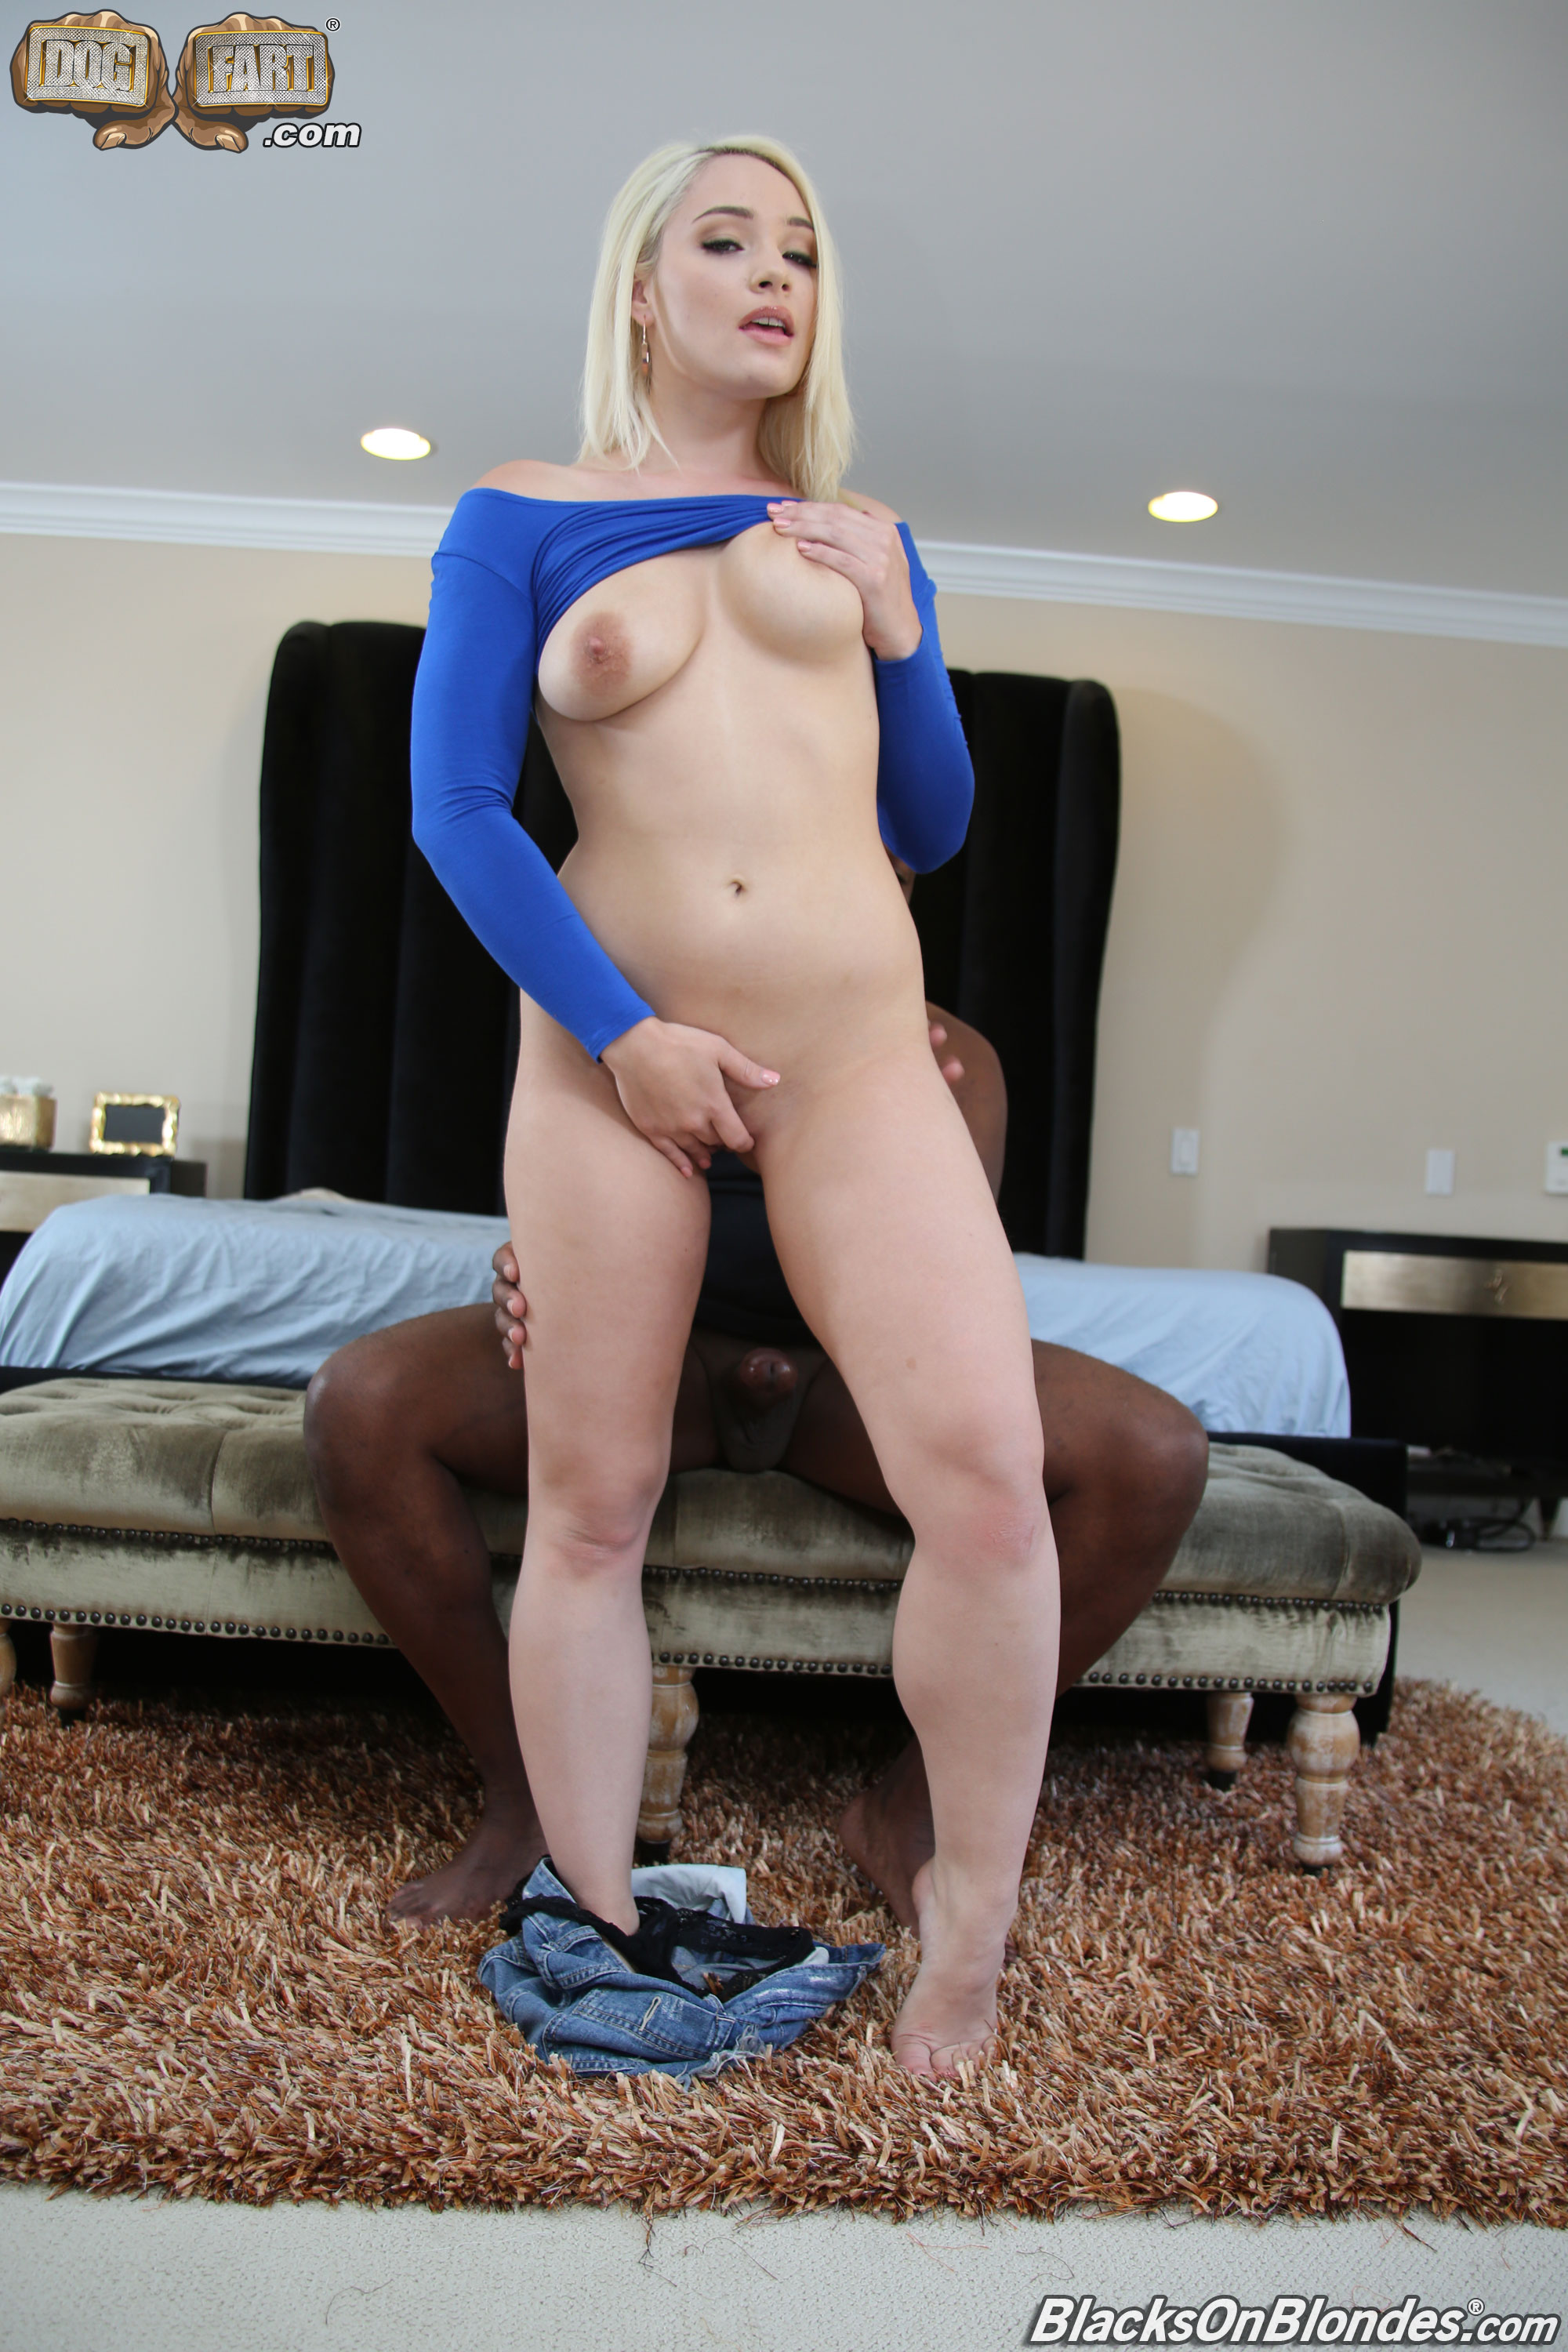 http://galleries.blacksonblondes.com/content/hadley_viscara/pics/pic/16.jpg